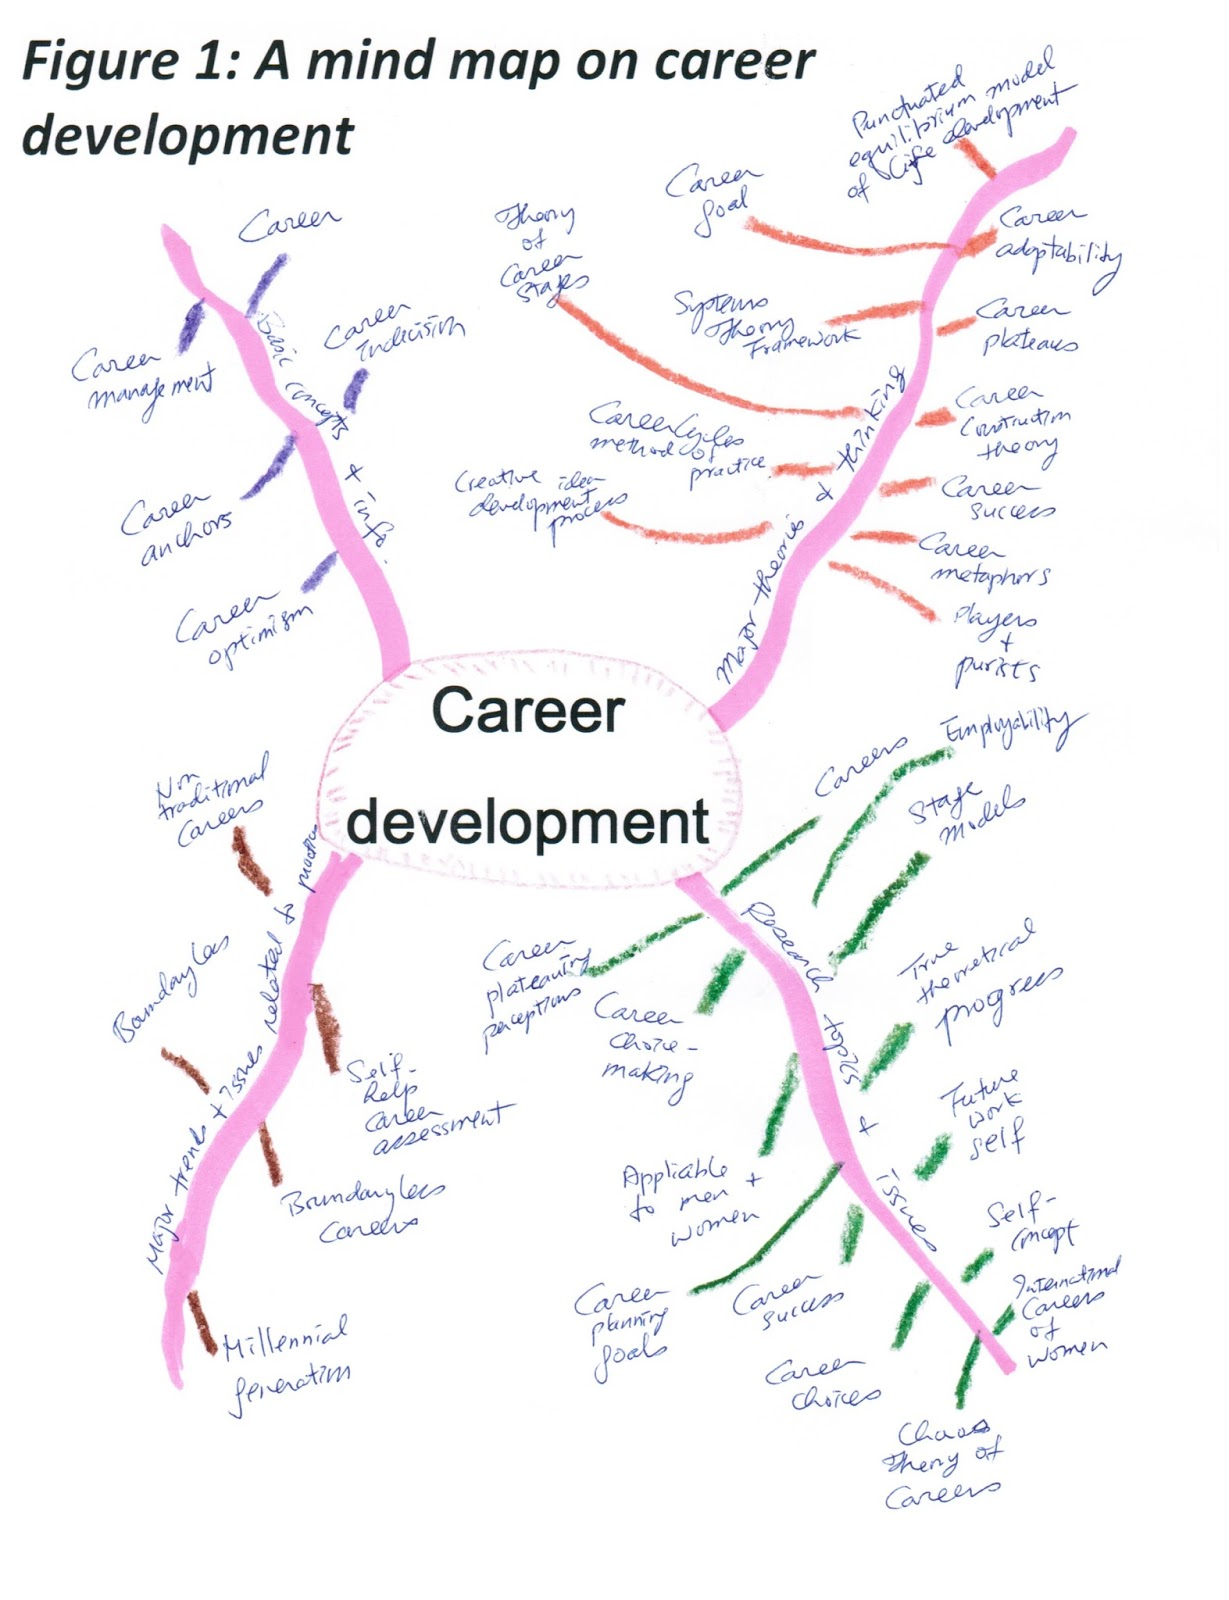 Joseph Kk Ho E Resources Mind Mapping The Topic Of Career